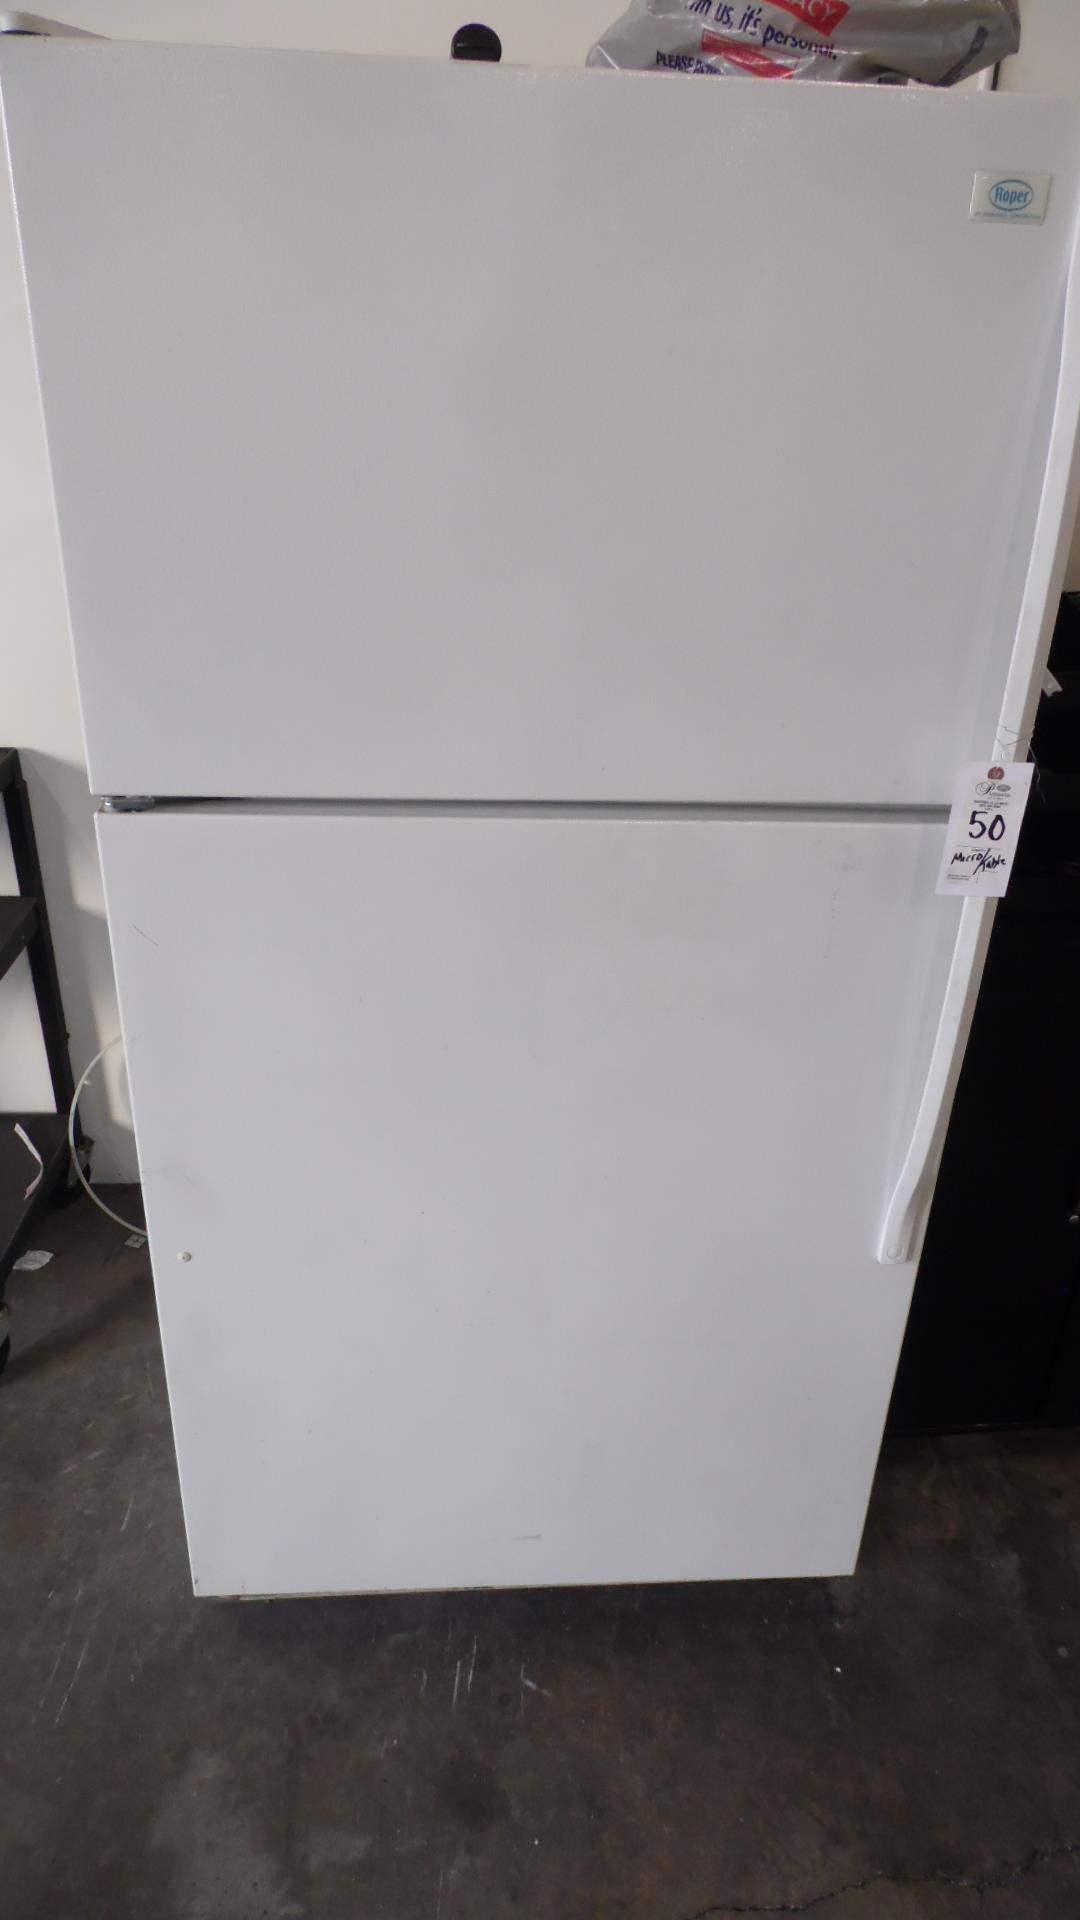 Lot 50 - REFRIGERATOR / TOASTER OVEN / MICROWAVE